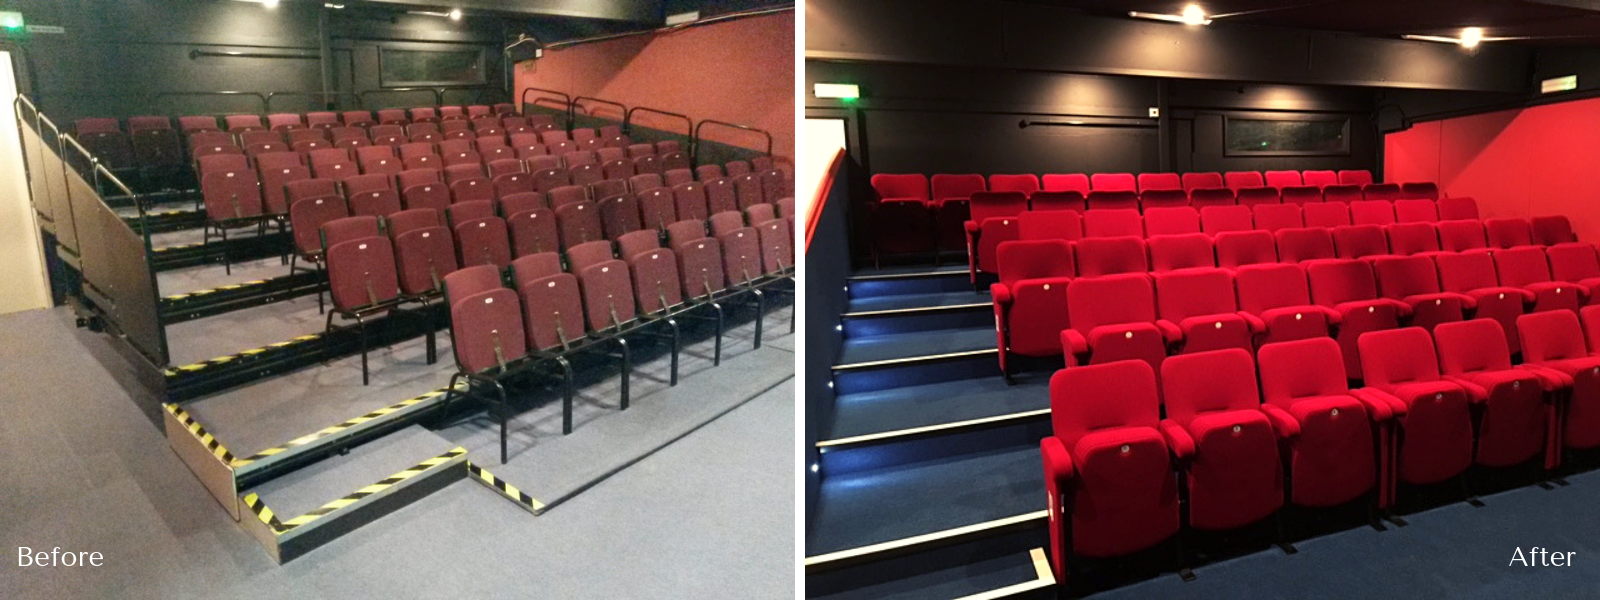 Formby Little Theatre before and after installation of new auditorium seats